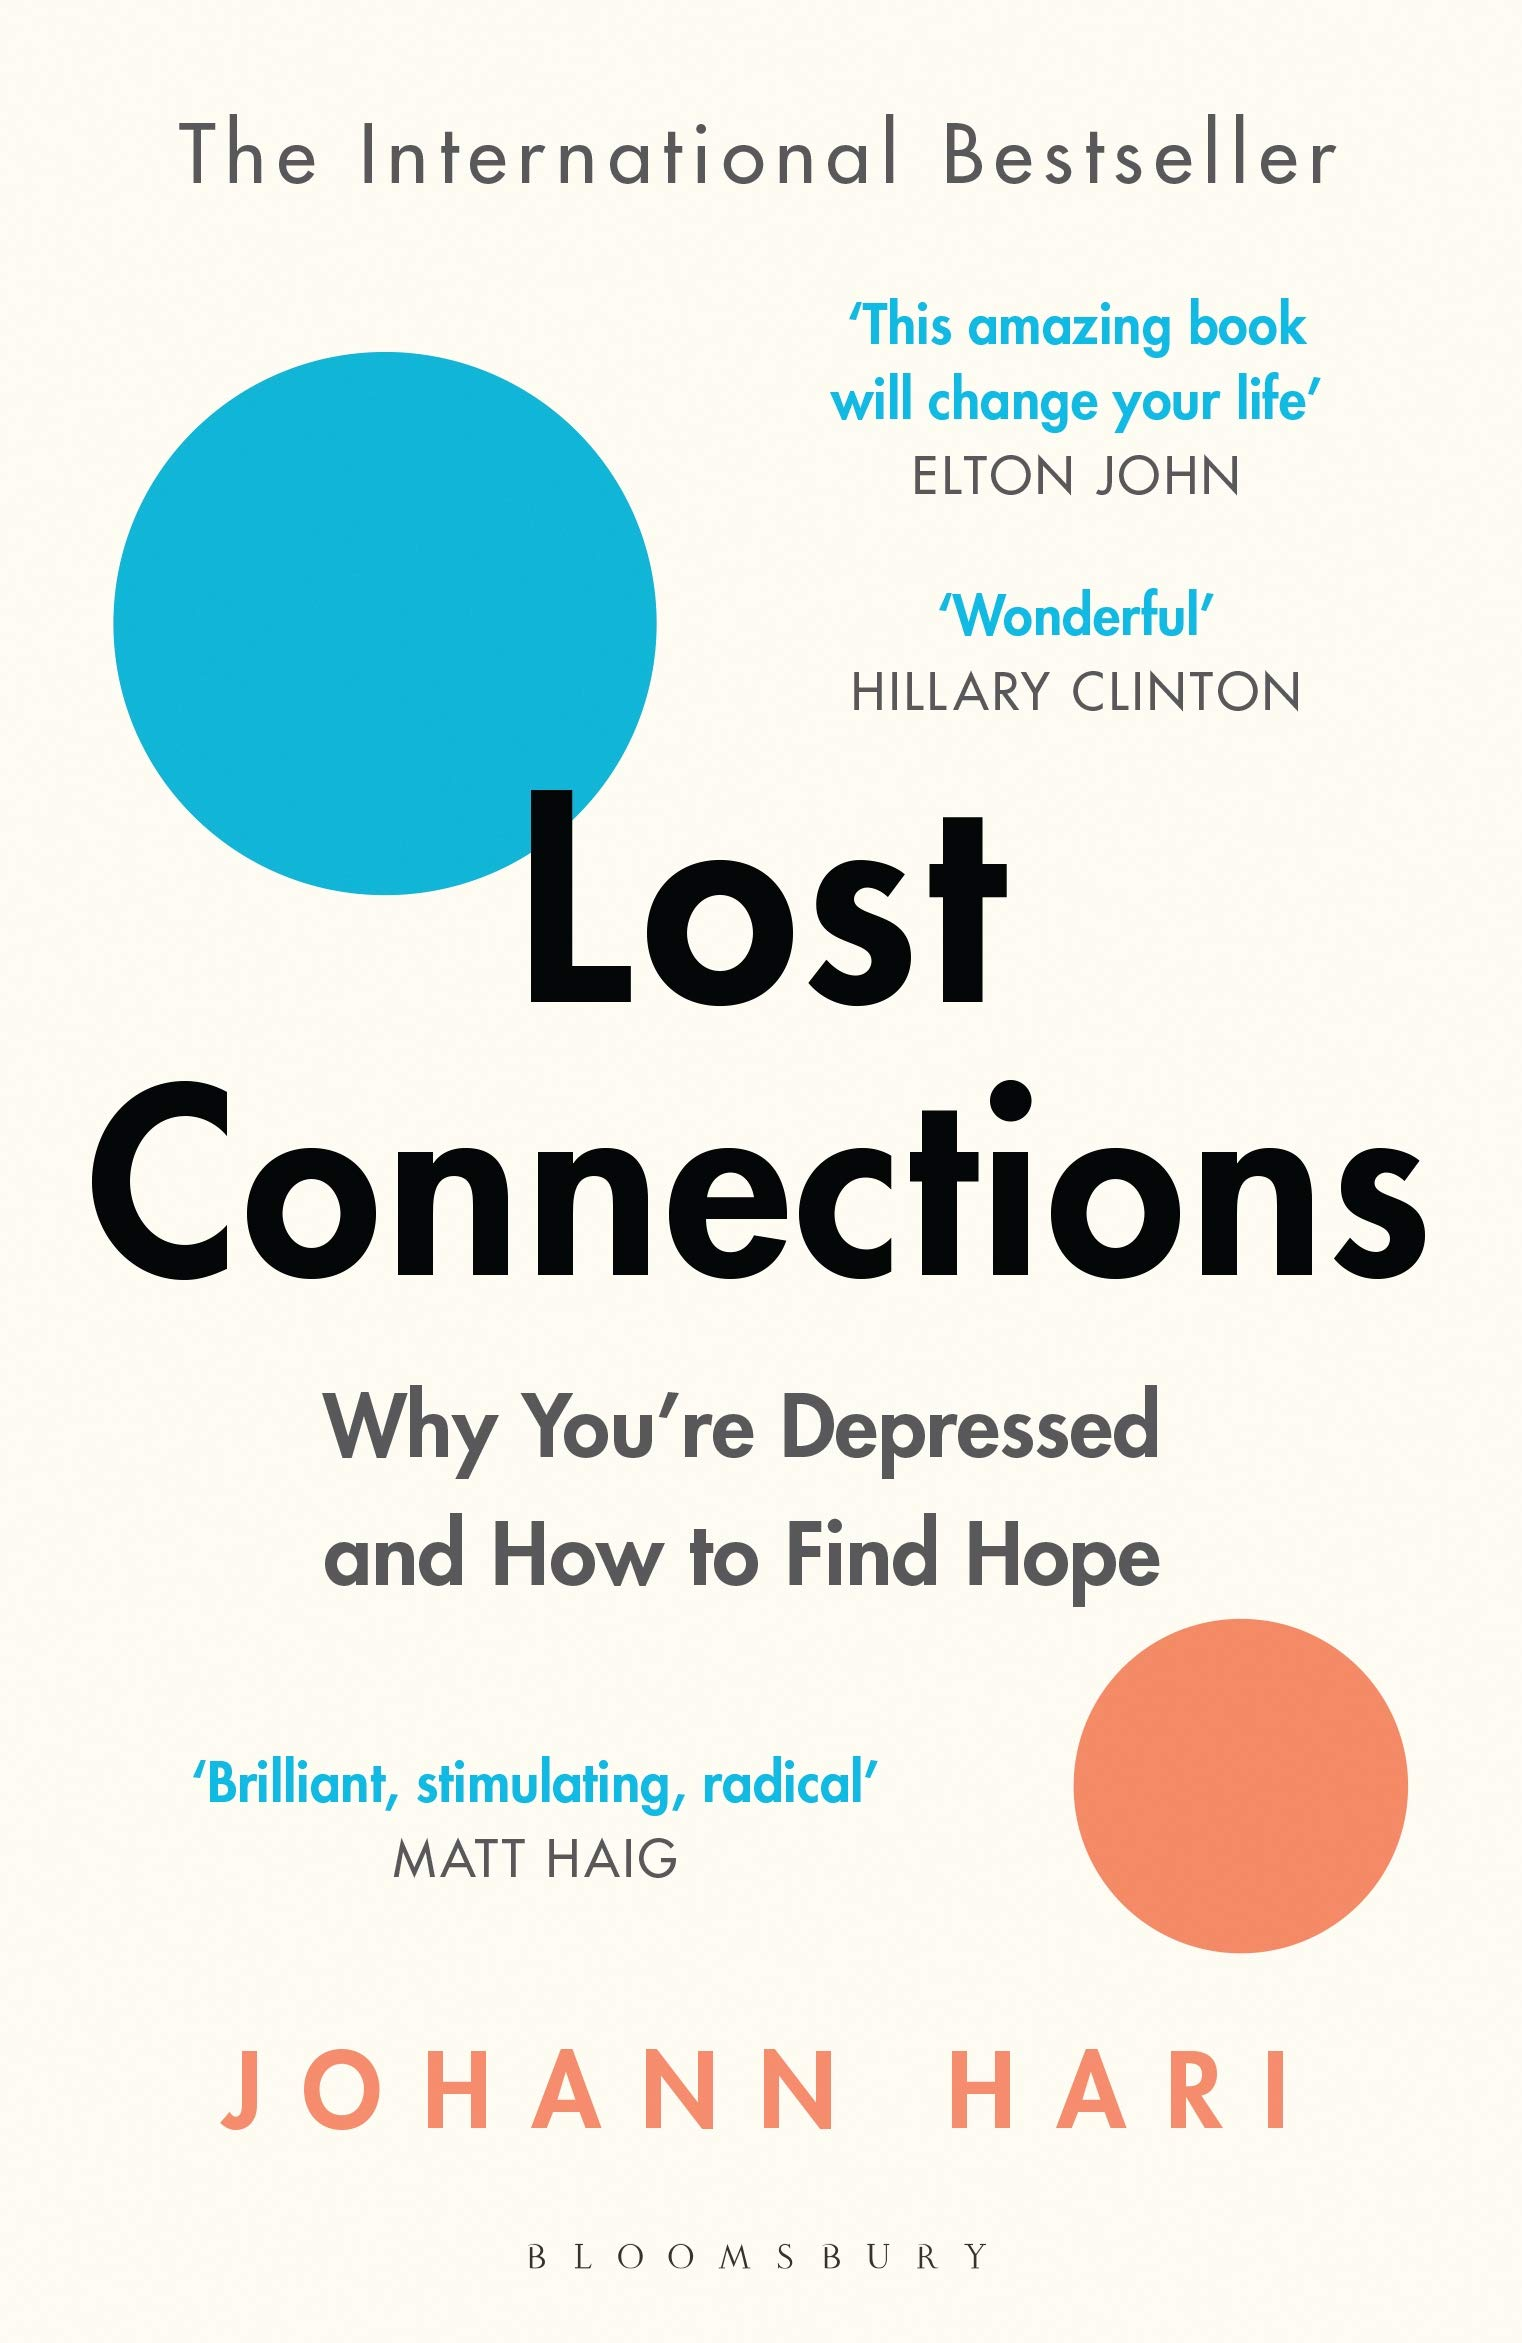 Lost Connections: Why You're Depressed and How To Find Hope | Johann Hari | Charlie Byrne's